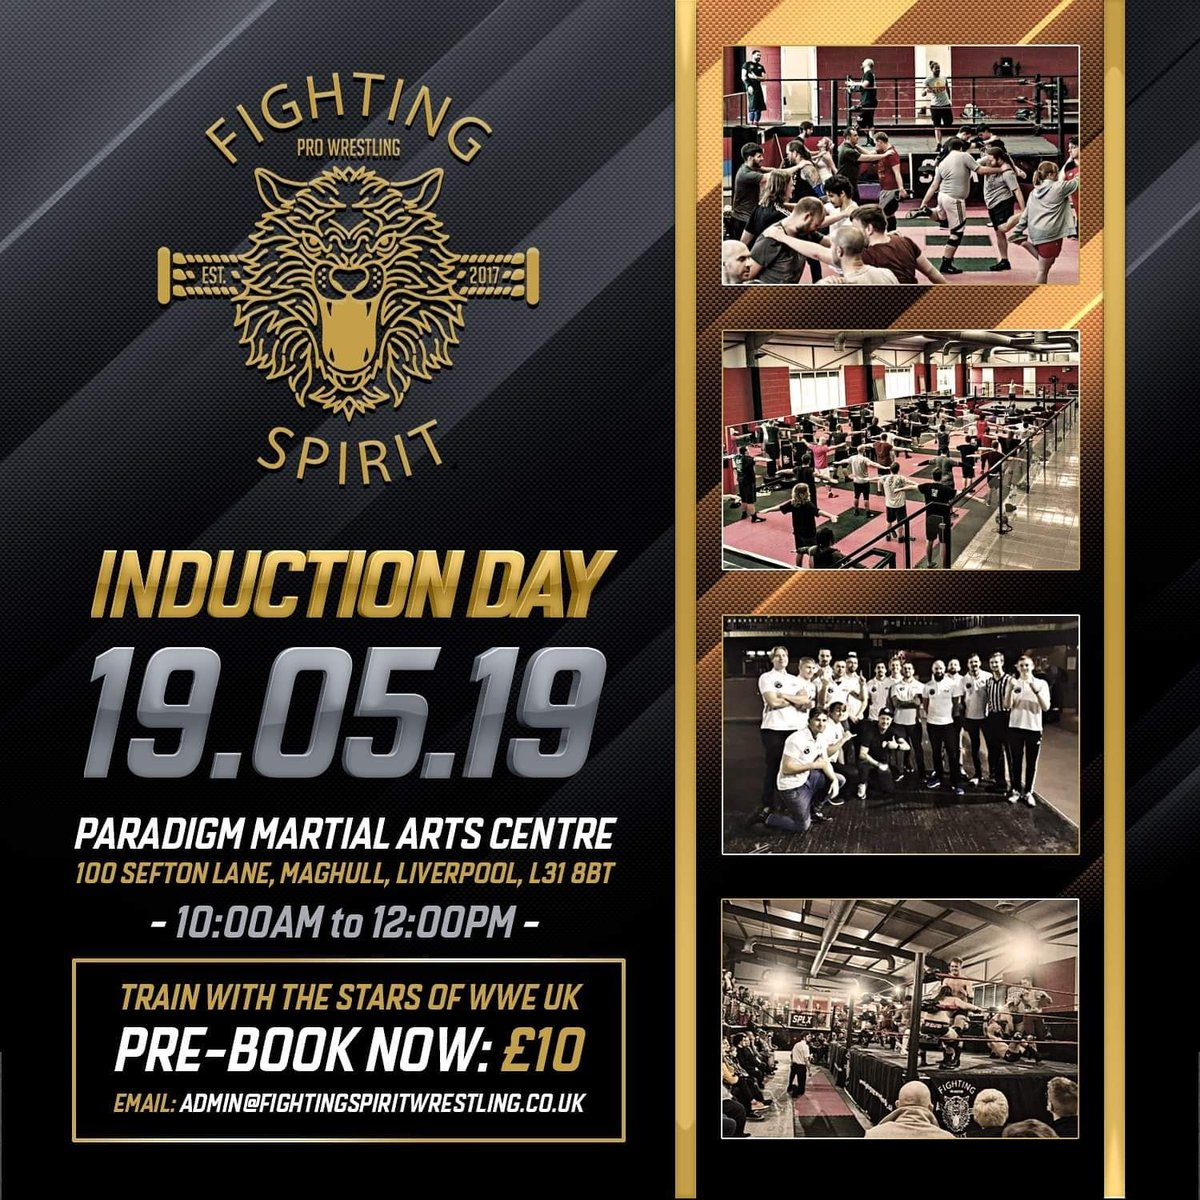 We are very proud to announce THIS SUNDAY we will be hosting Fighting Spirits first ever induction day! Note: ANYONE IS WELCOME (You don't need any athletic background) for more info, Email: Admin@fightingspiritwrestling.co.uk FOLLOW YOUR DREAM!